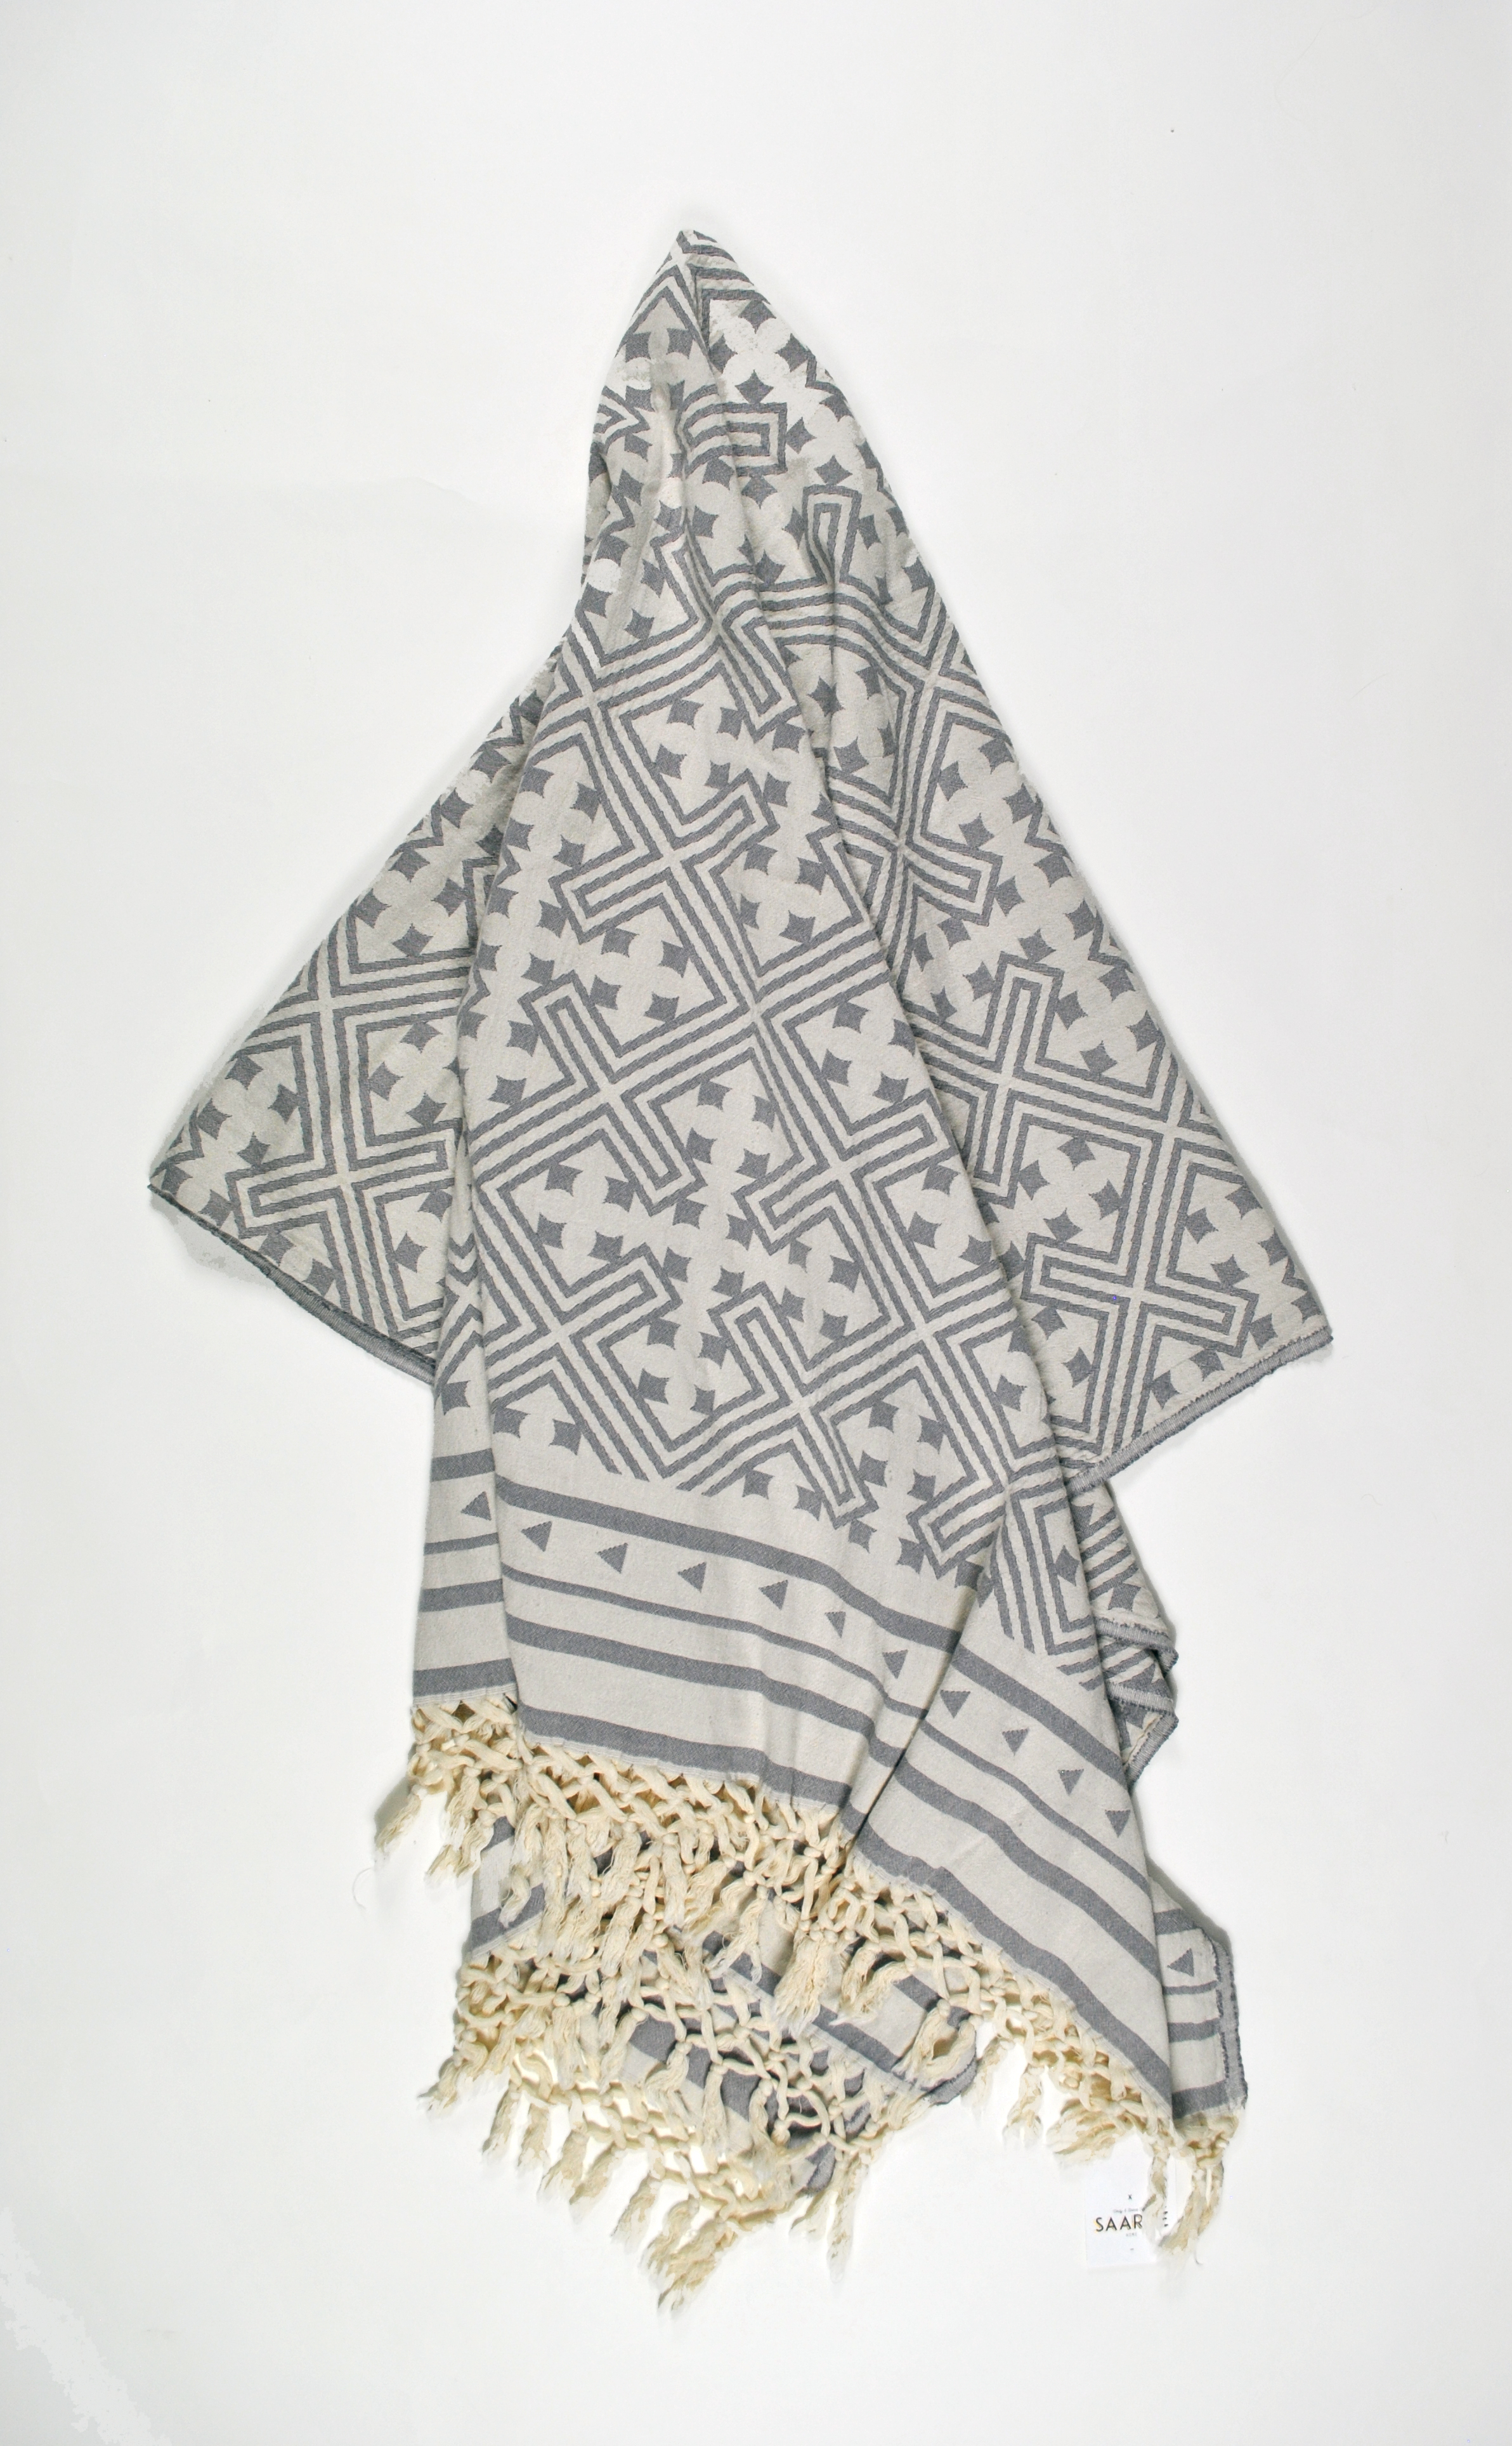 4. beach blanket - Soft and stylish. The perfect beach blanket for two.